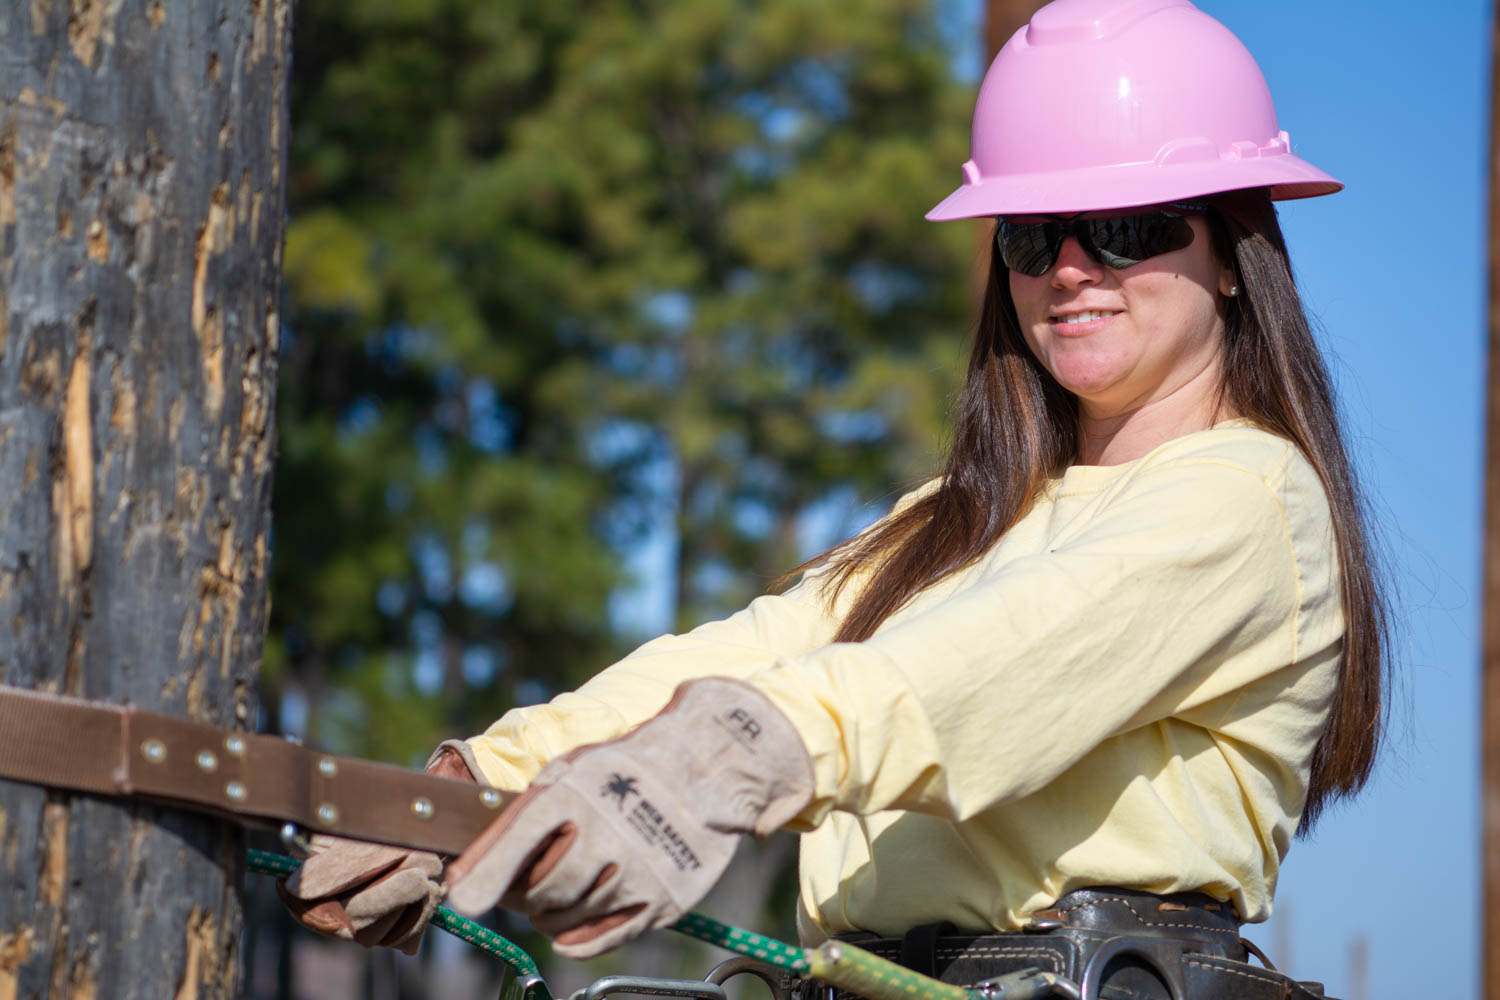 Lady Lineworker Image